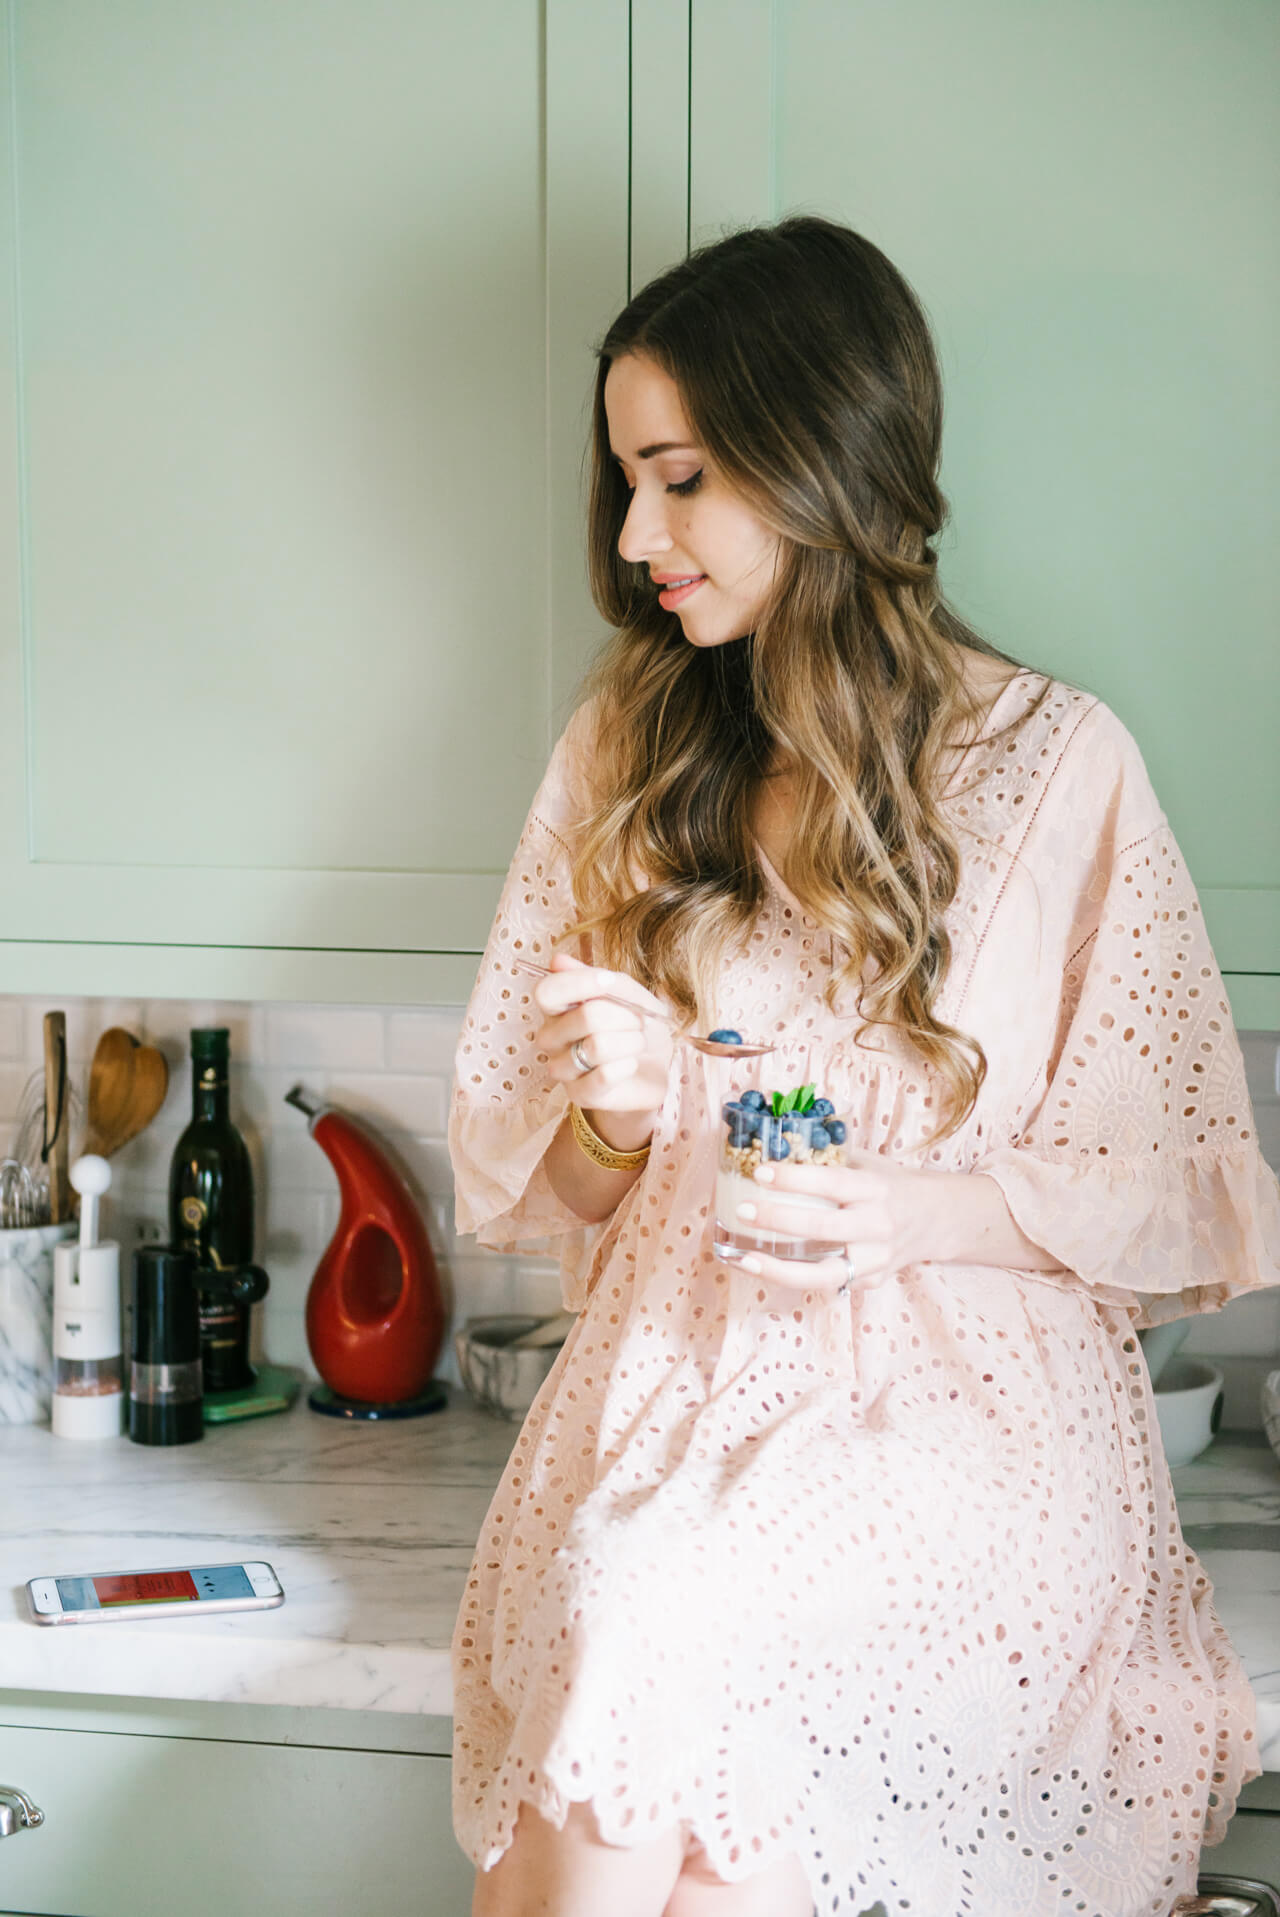 Easy breakfast meal with blush dress